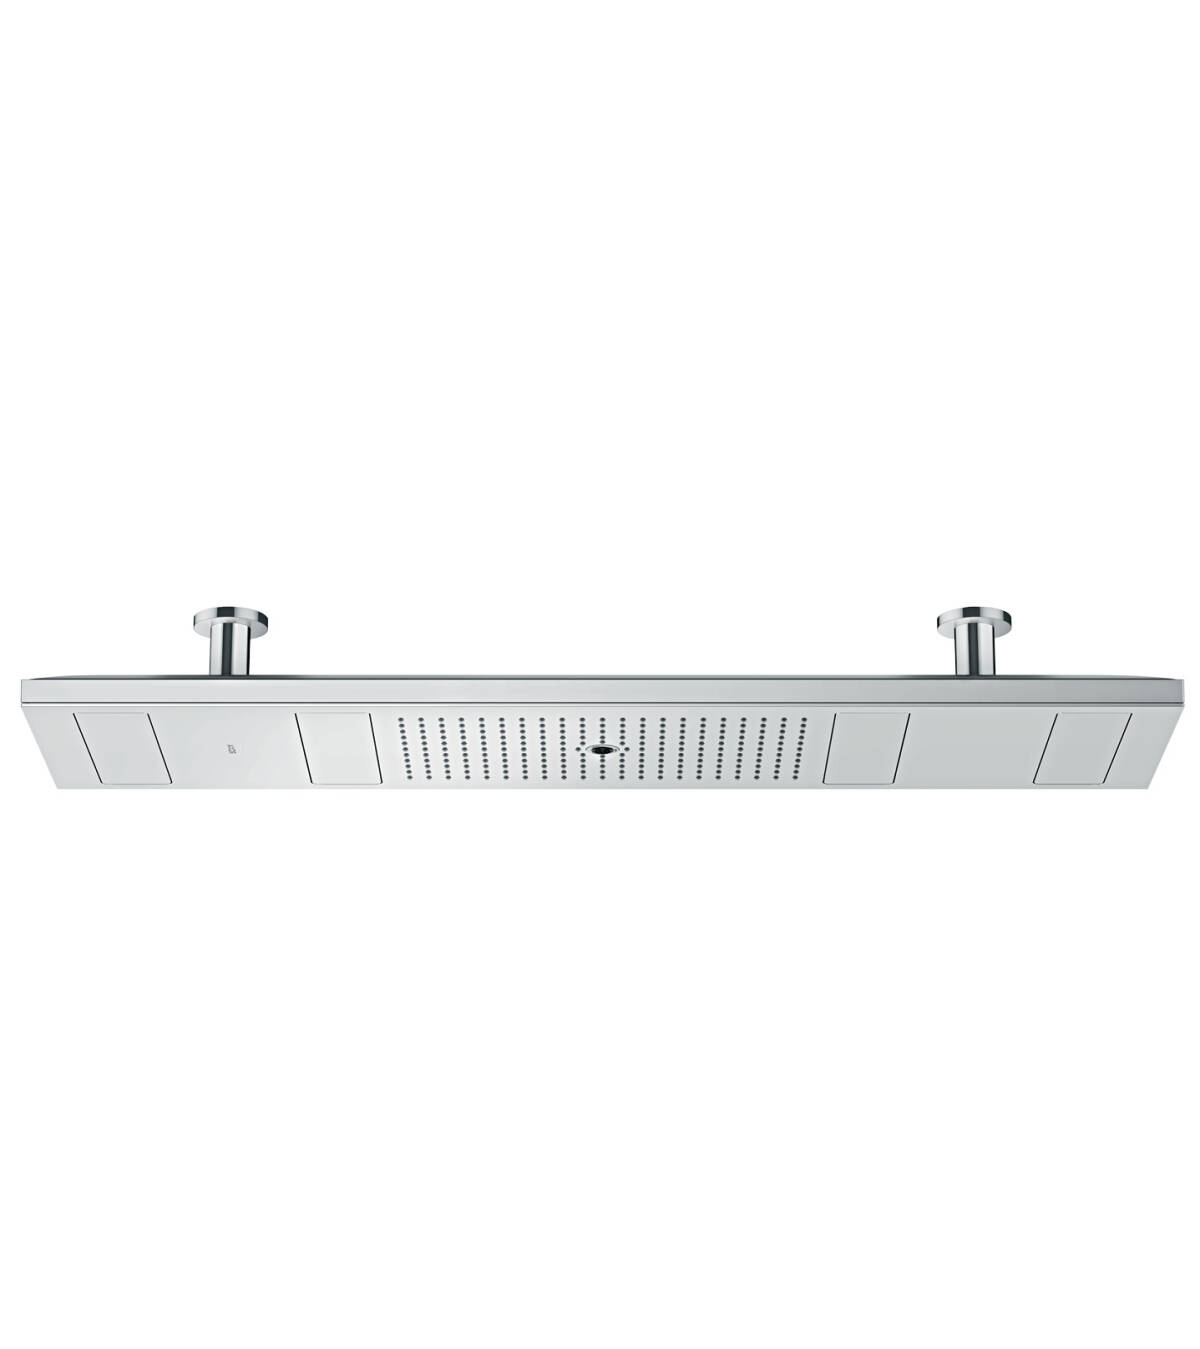 ShowerHeaven 1200/300 4jet with lighting 2700 K, Chrome, 10628000